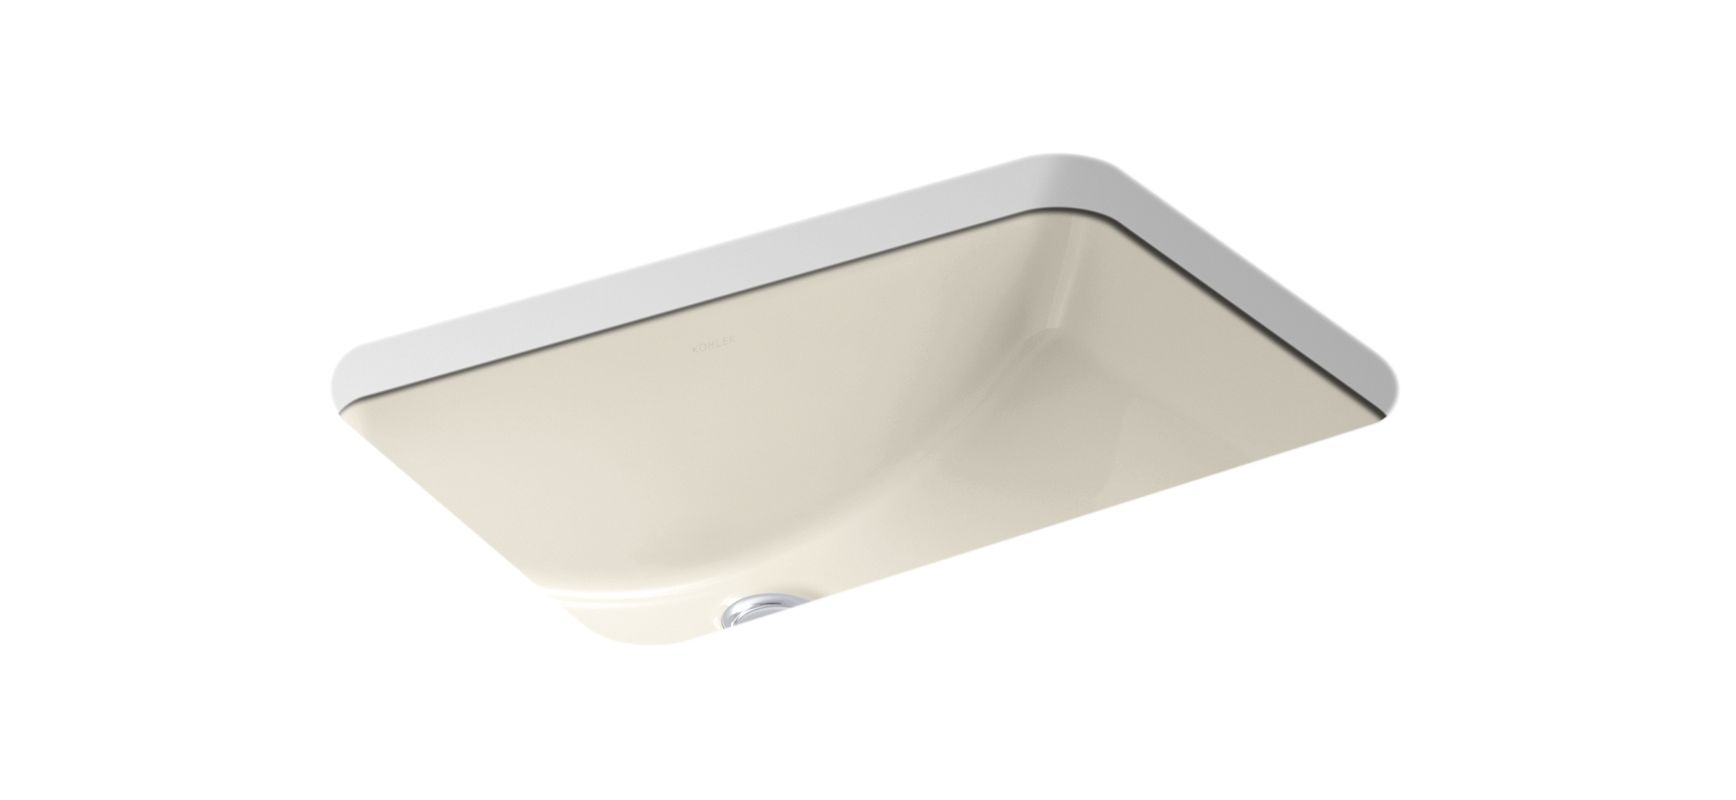 K 2214 47 in almond by kohler Kohler ladena undermount bathroom sink